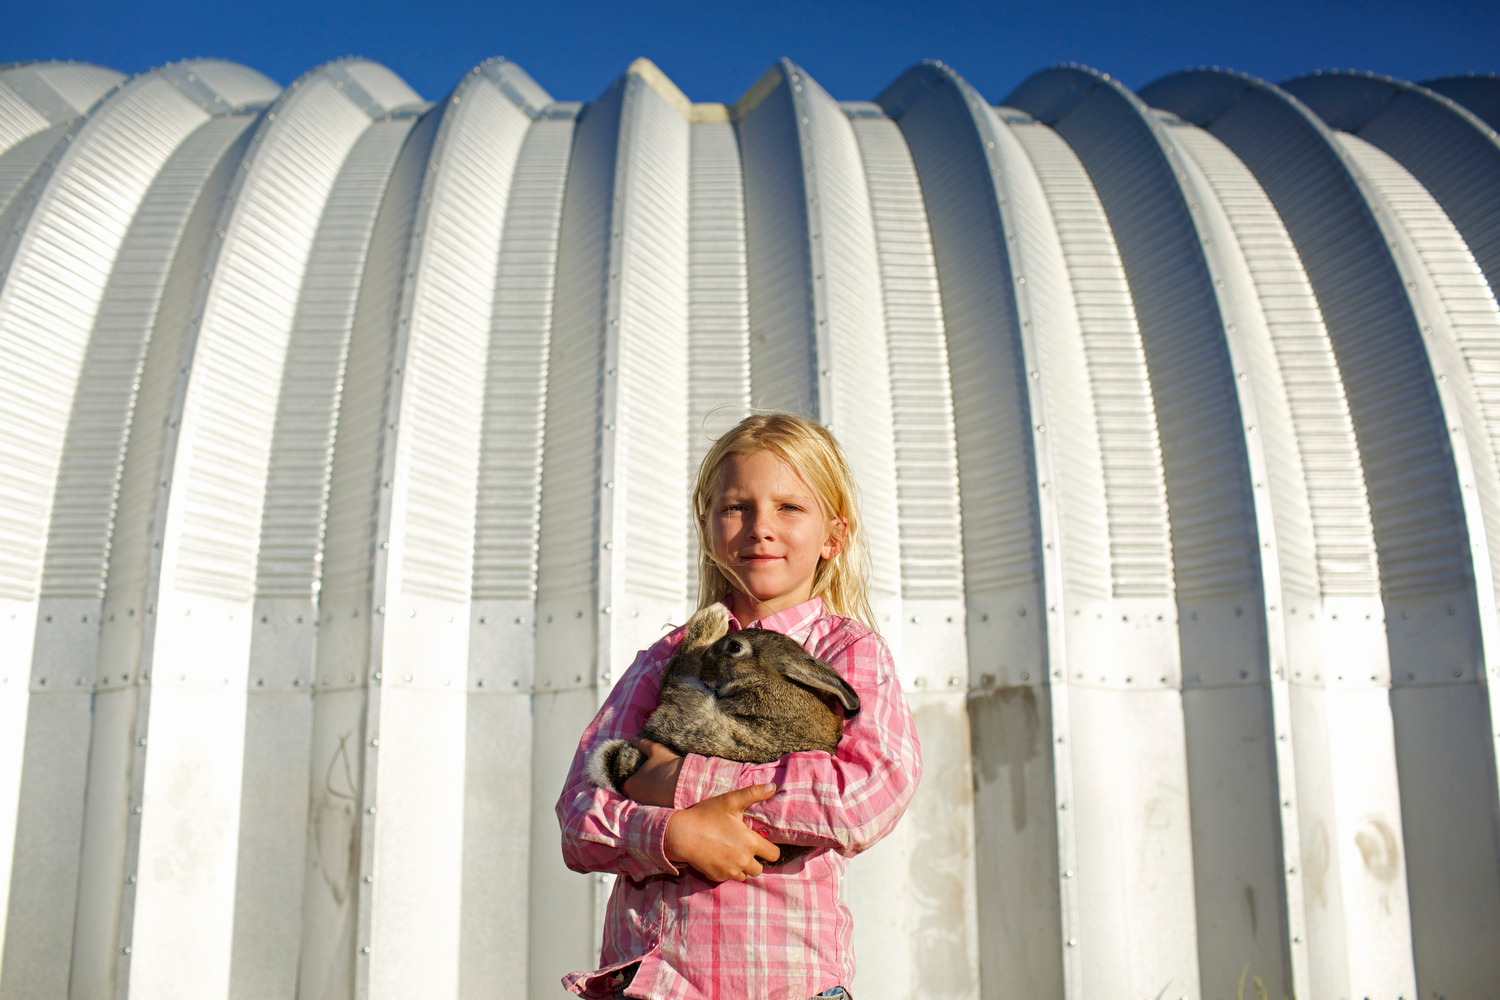 Riley Rodgers, 8, Grand Canyon Ranches, Vallee AZ